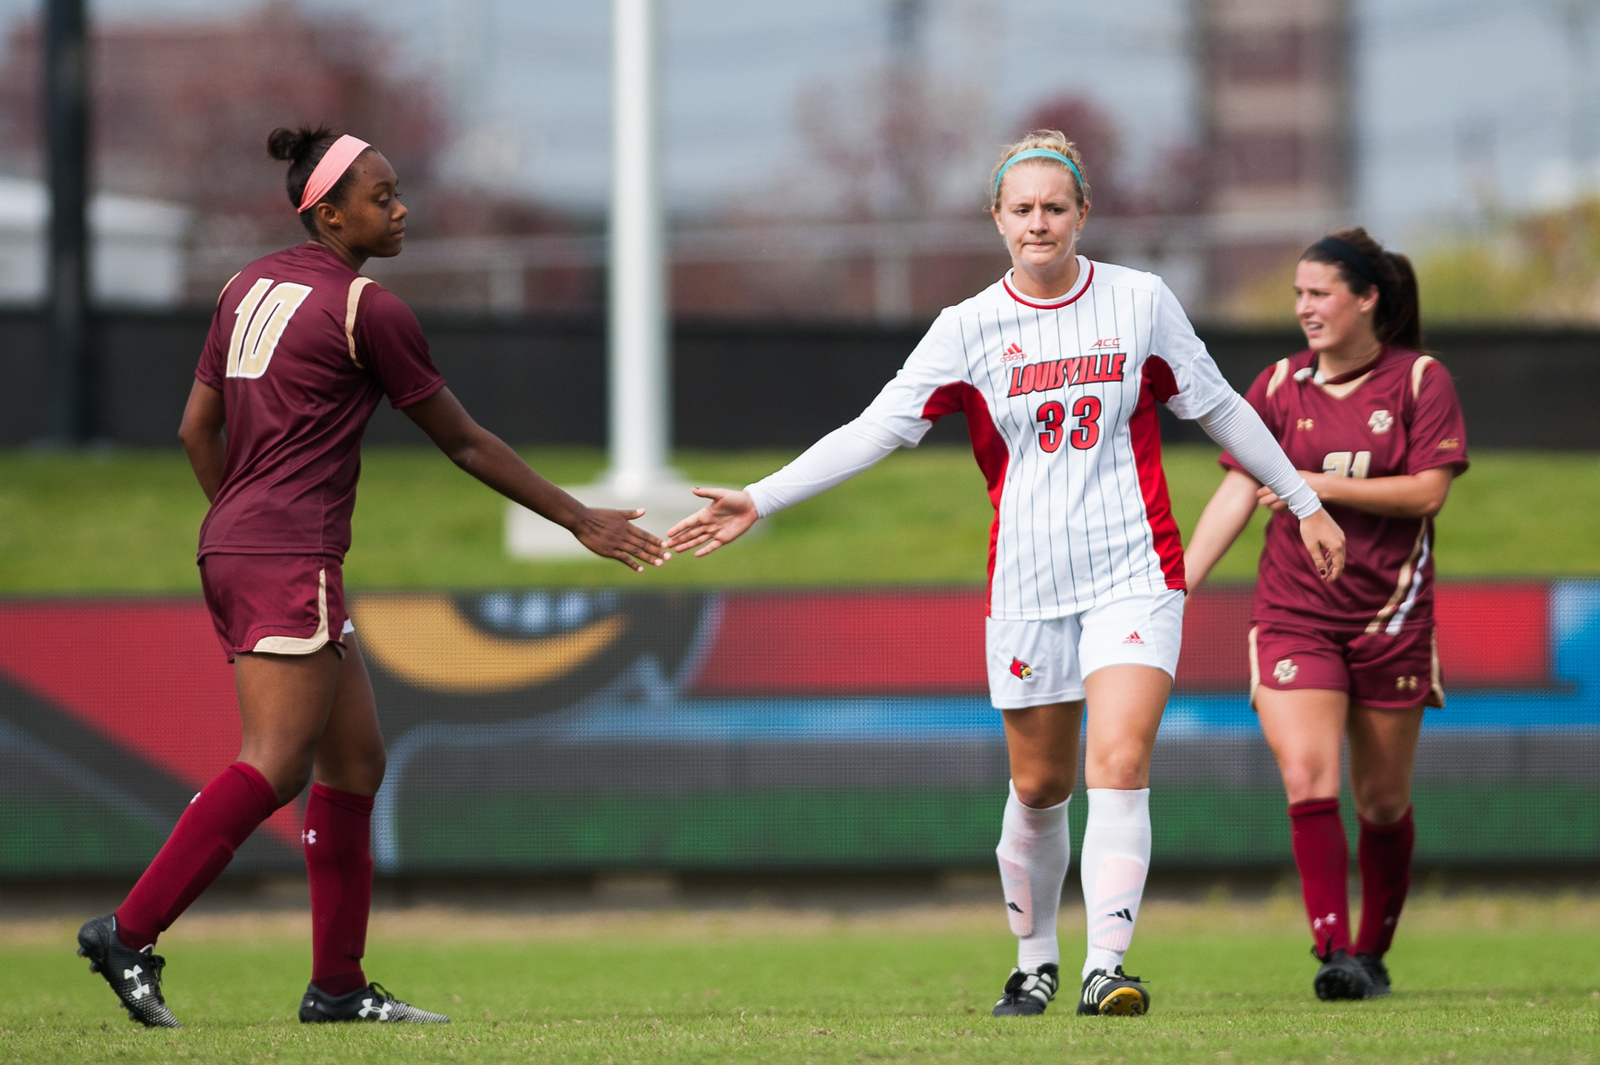 Lexie Niedoba (no. 33) of the women's soccer team frustratingly high-fives an opponent following a 0-1 loss during a regular season game for the University of Louisville VS Boston College on 10-12-14 in Louisville, Kentucky at Lynn Stadium.